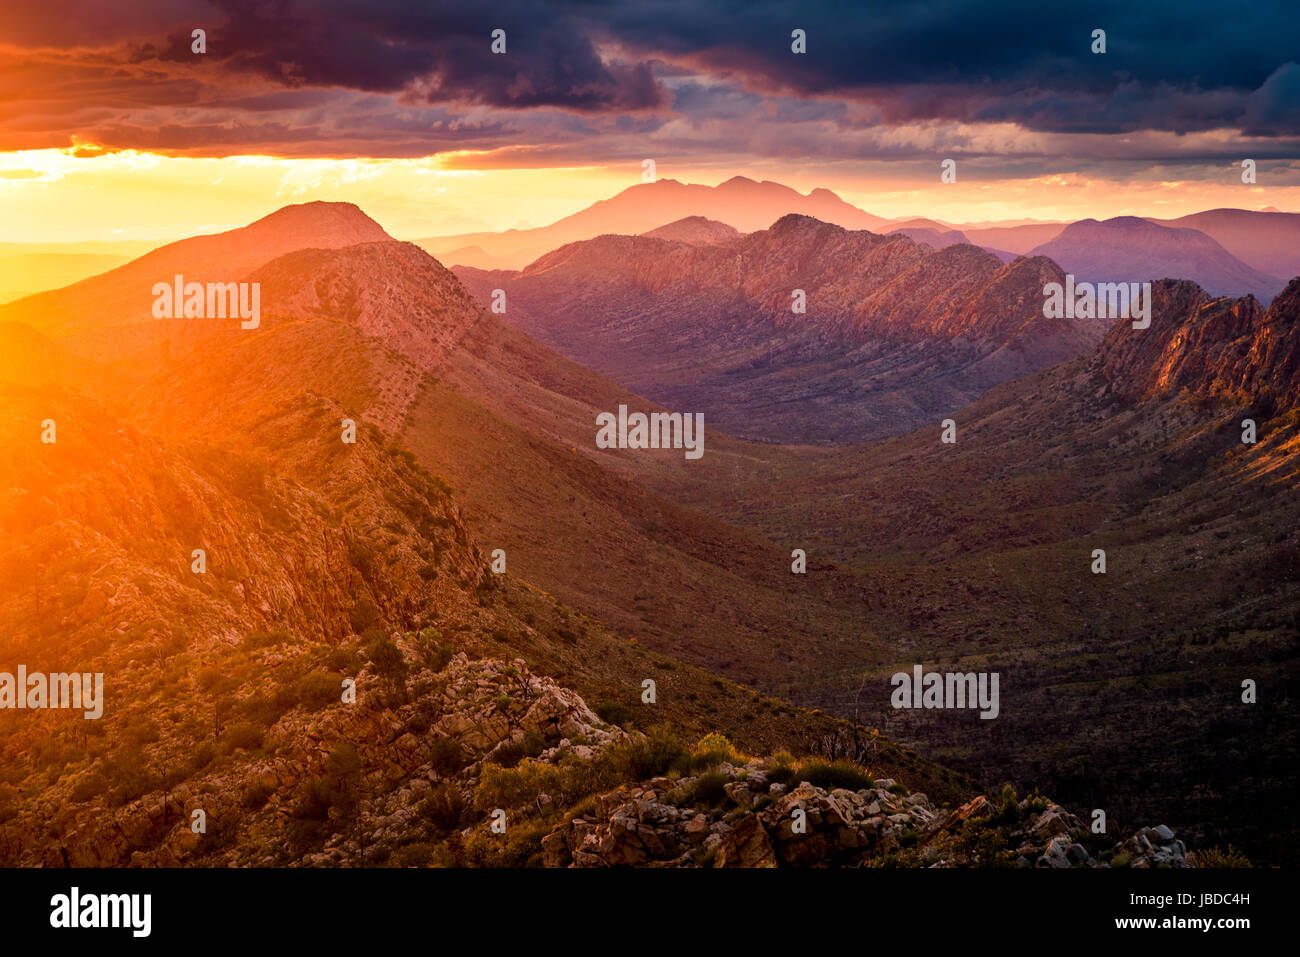 Sunset at Counts Point in West Macdonnell Ranges, Northern Territory - Stock Image